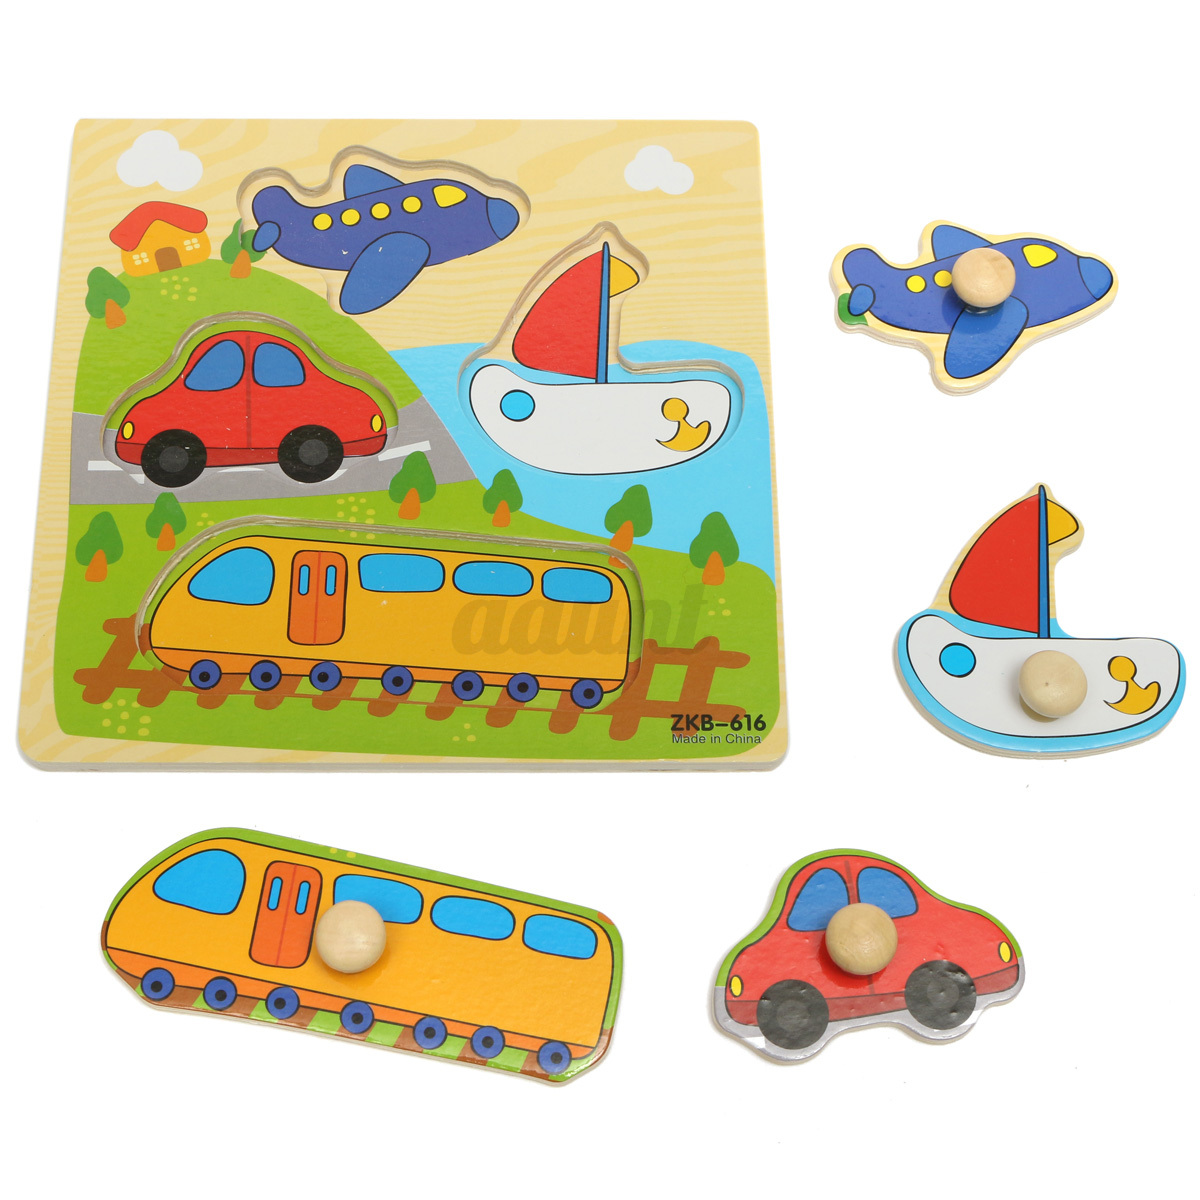 Toddler Toys Puzzle : Colorful wooden baby toddler kids educational jigsaw